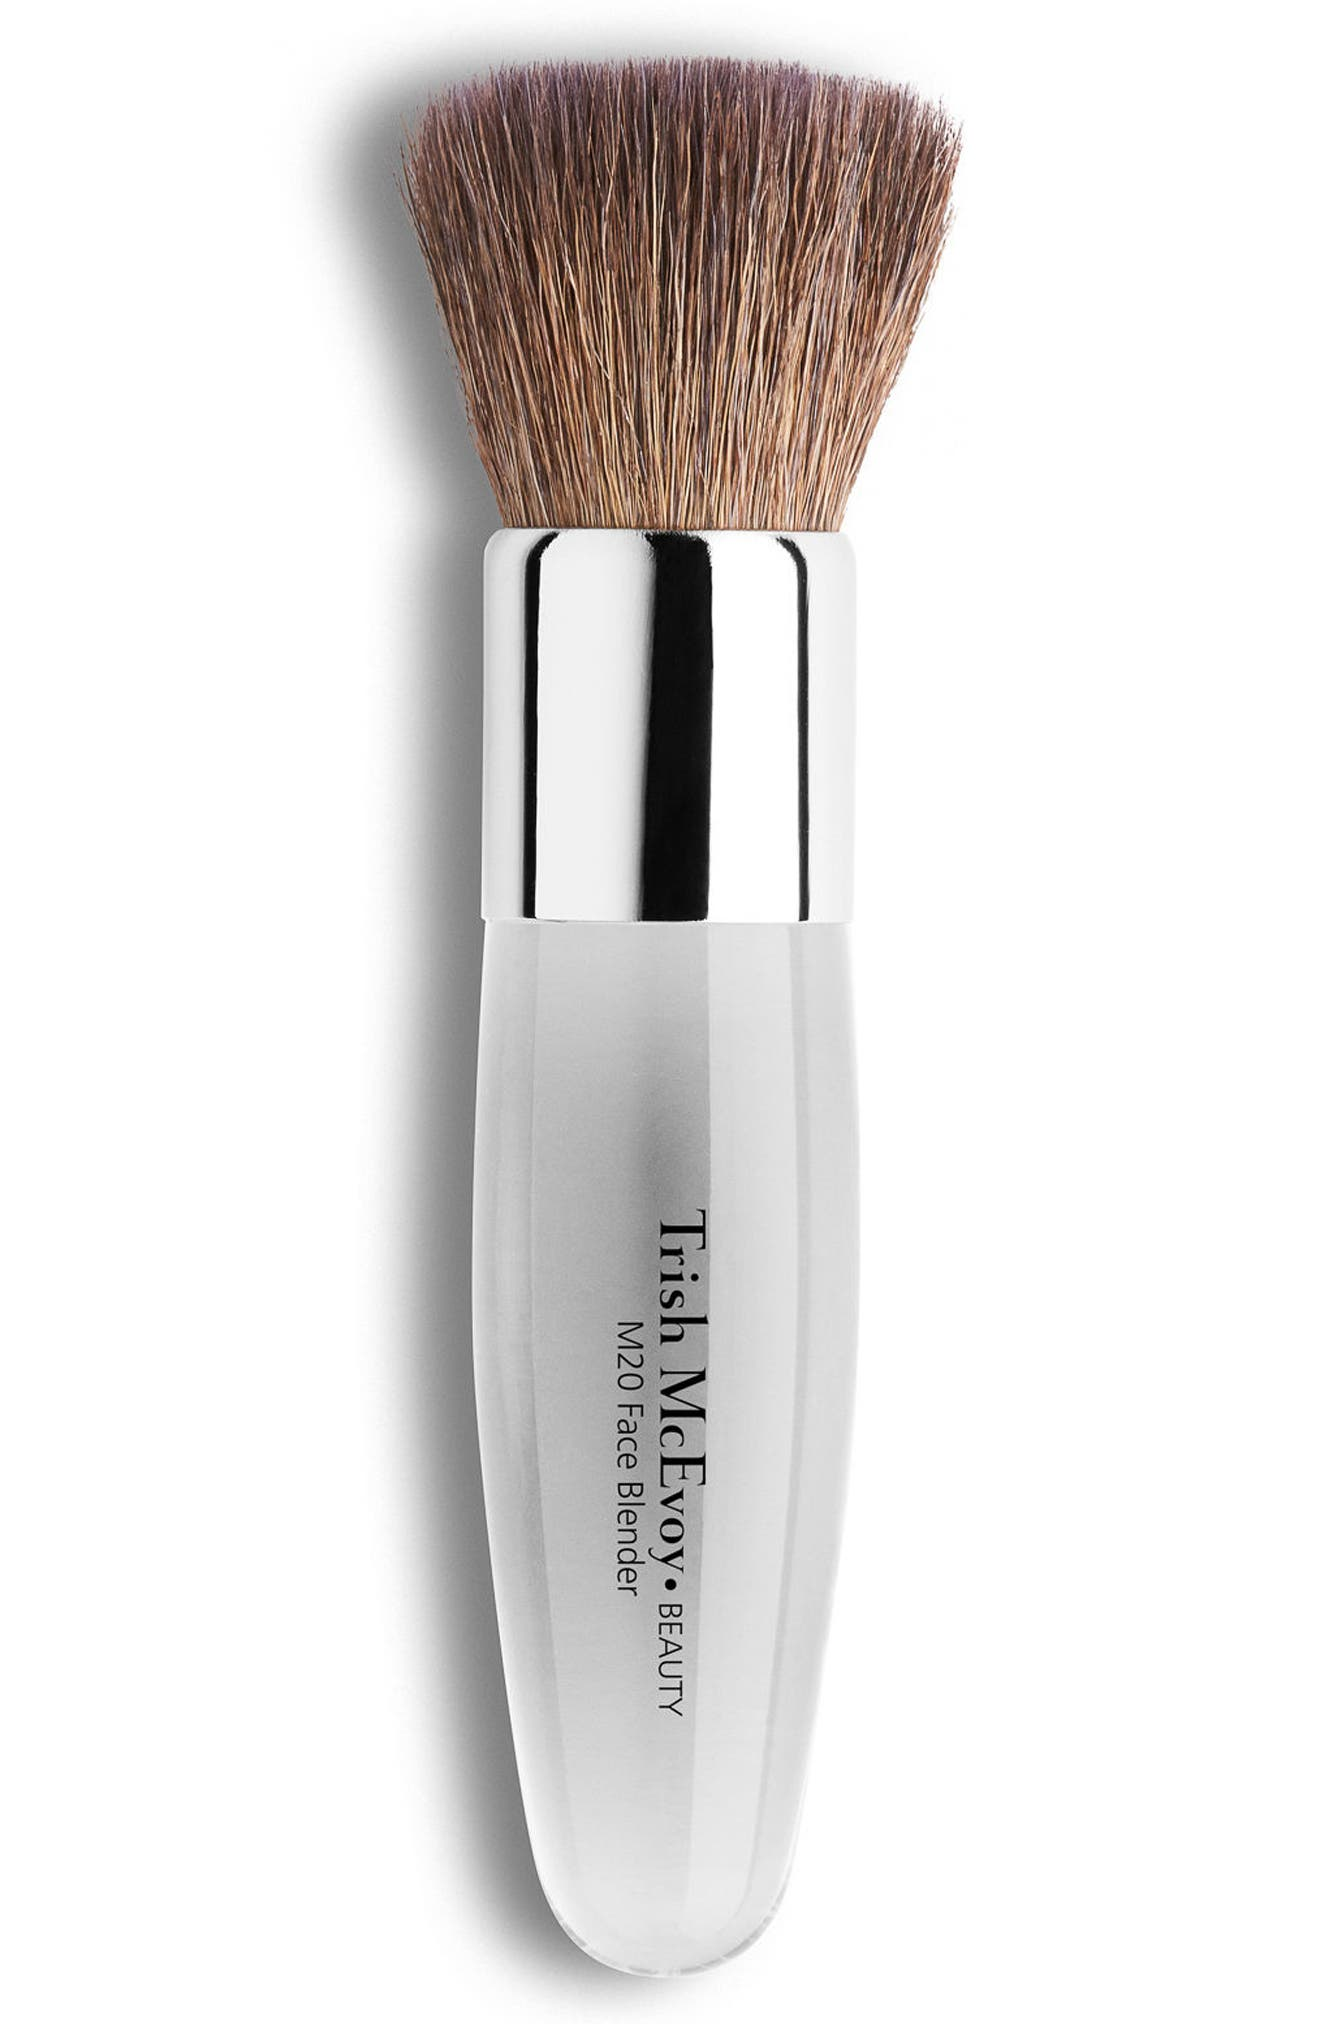 #M20 Face Blender Brush,                             Main thumbnail 1, color,                             No Color